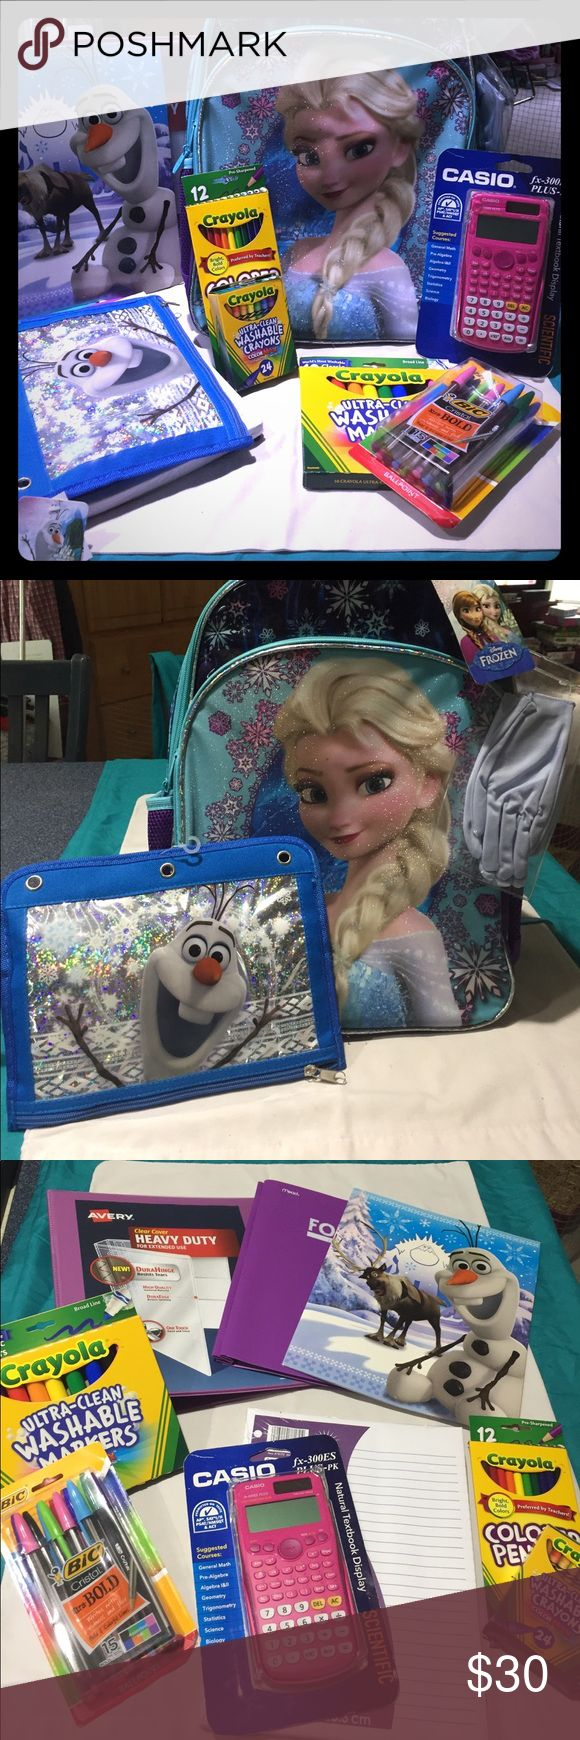 """Huge Back to school bundle!! Backpack and supplies Back to school Frozen Bundle includes the following items ALL NWT: one Elsa padded backpack with two zippered compartments and two holders for water bottles, one heavy duty 1.5"""" 3-ring binder, two 2-pocket folders, one pack of wide-ruled loose leaf paper, one zippered Olaf pencil case, colored pencils pack, markers pack, crayons pack (all crayola), one pink Casio scientific calculator and one pack of bic multicolored pens!! Huge…"""